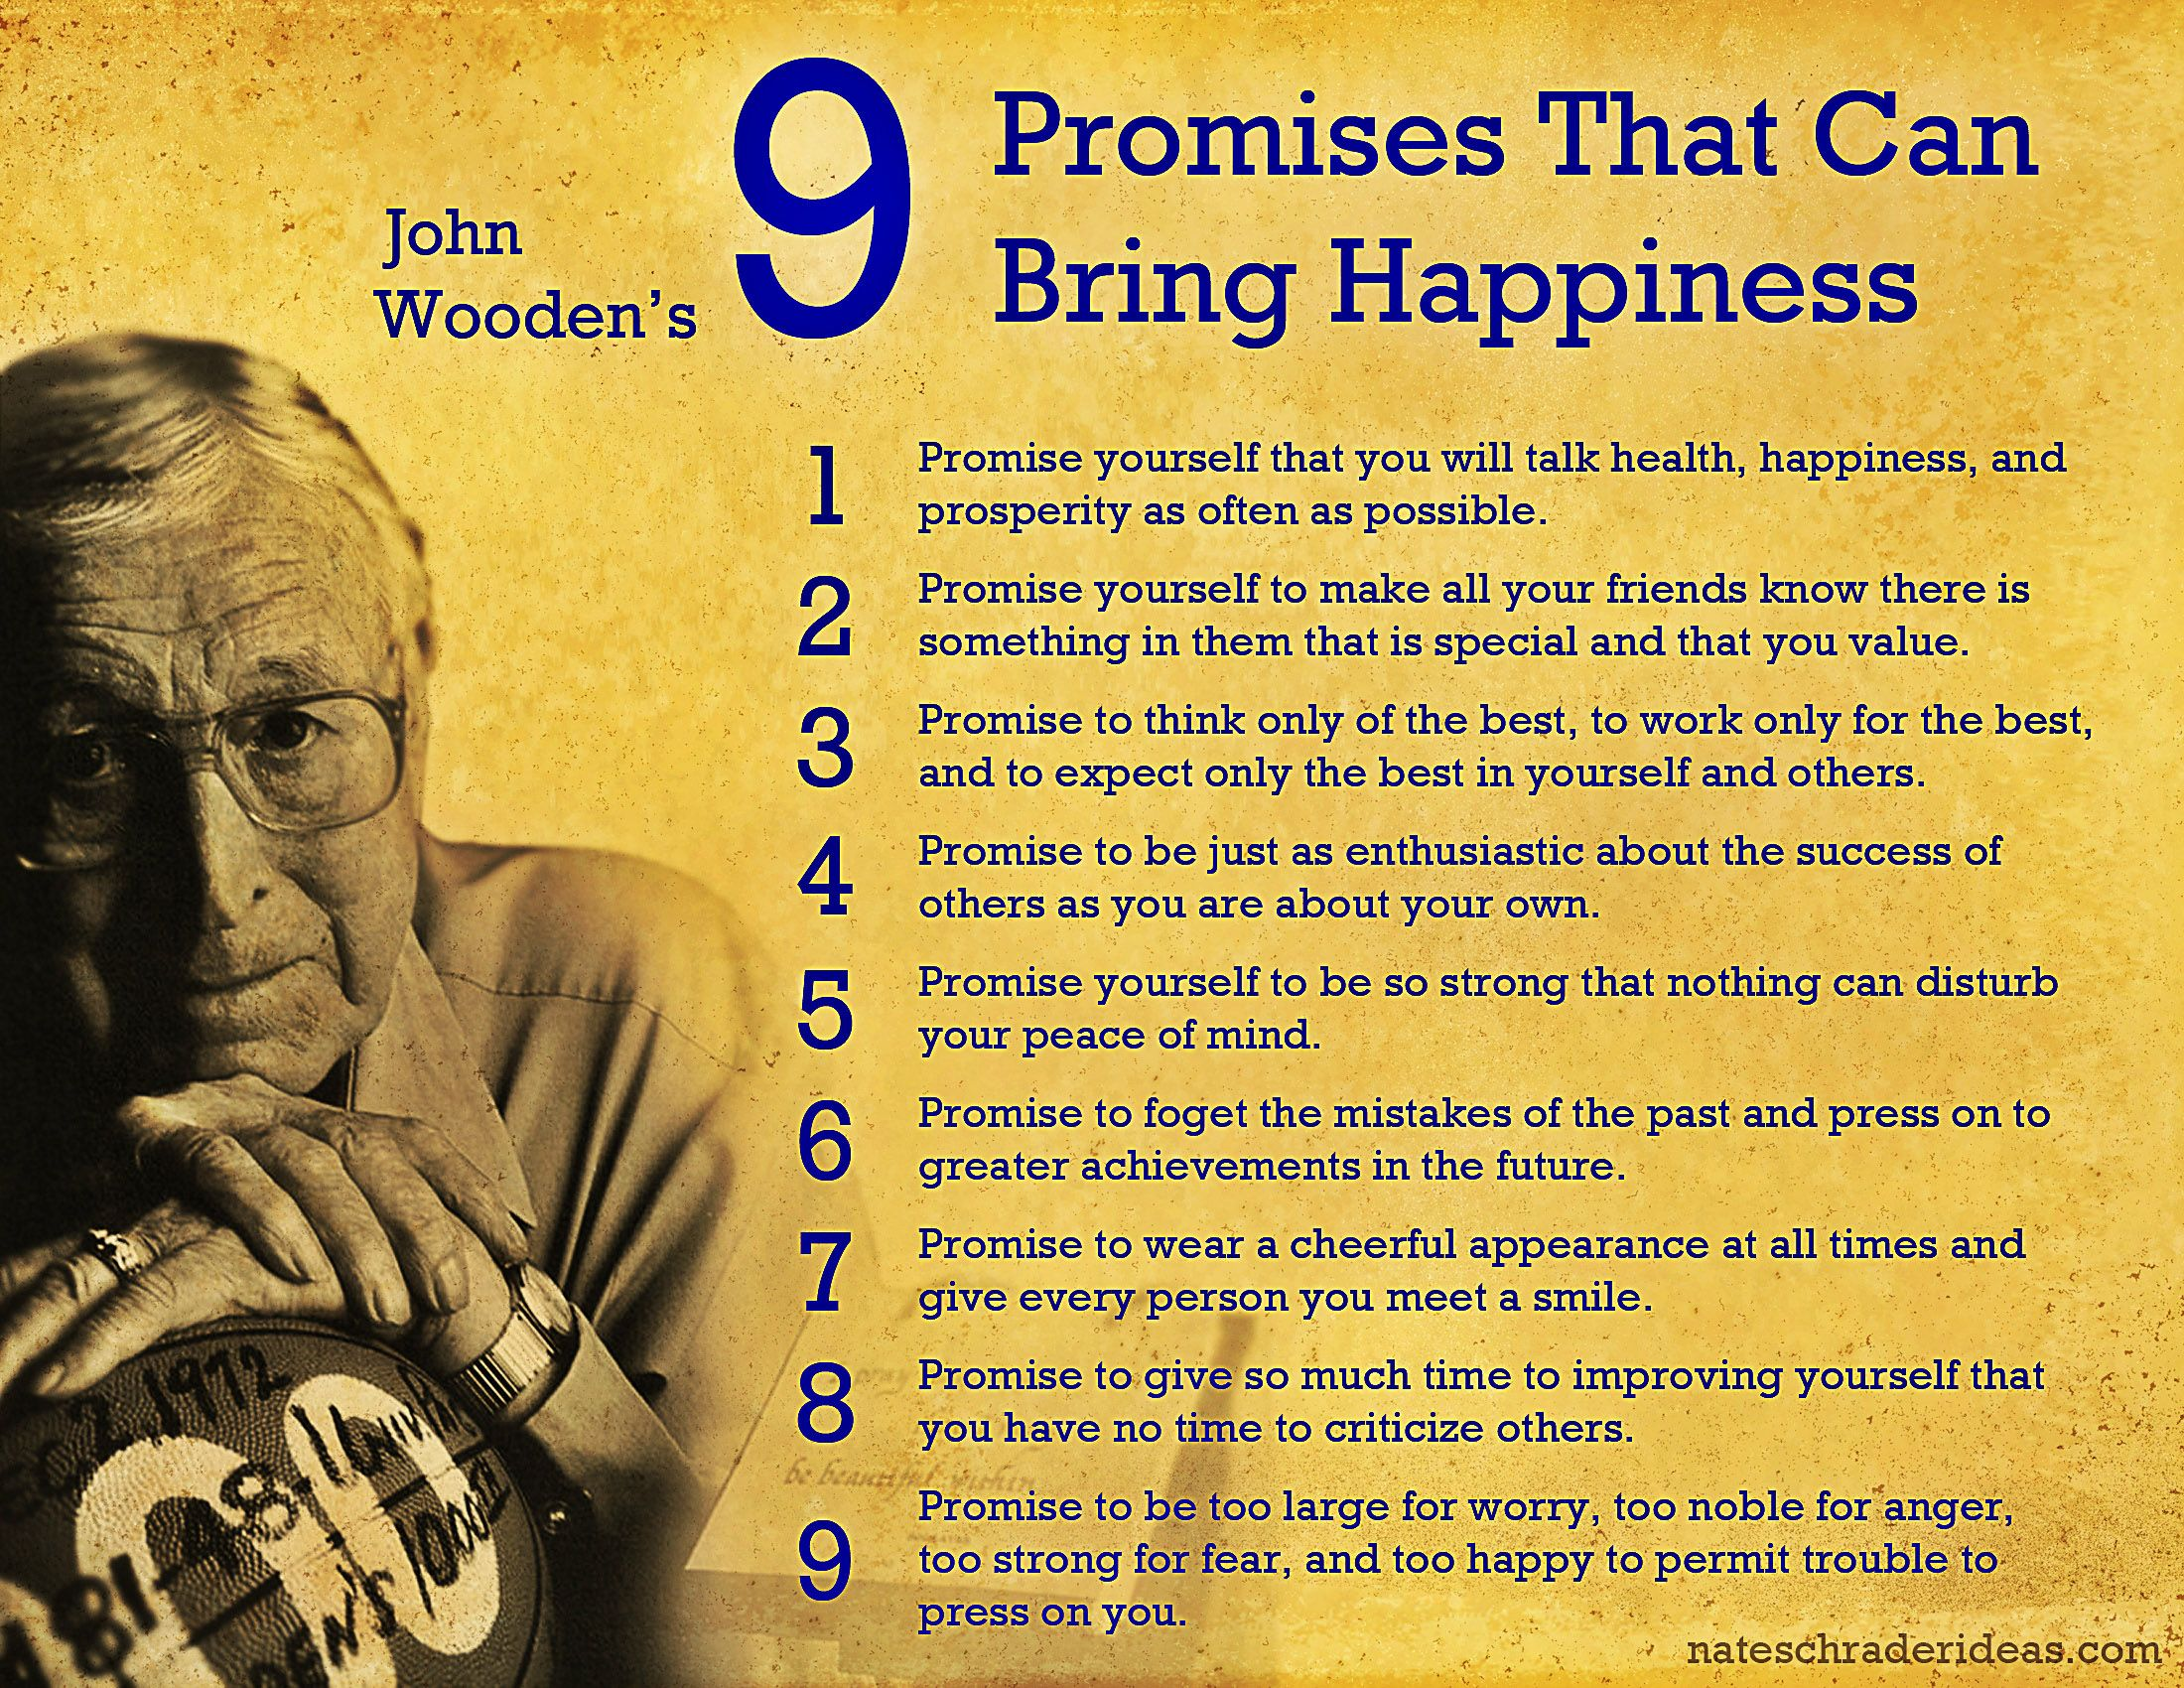 John Wooden Quotes Custom John Wooden's Nine Promises That Can Bring Happiness Inspirational